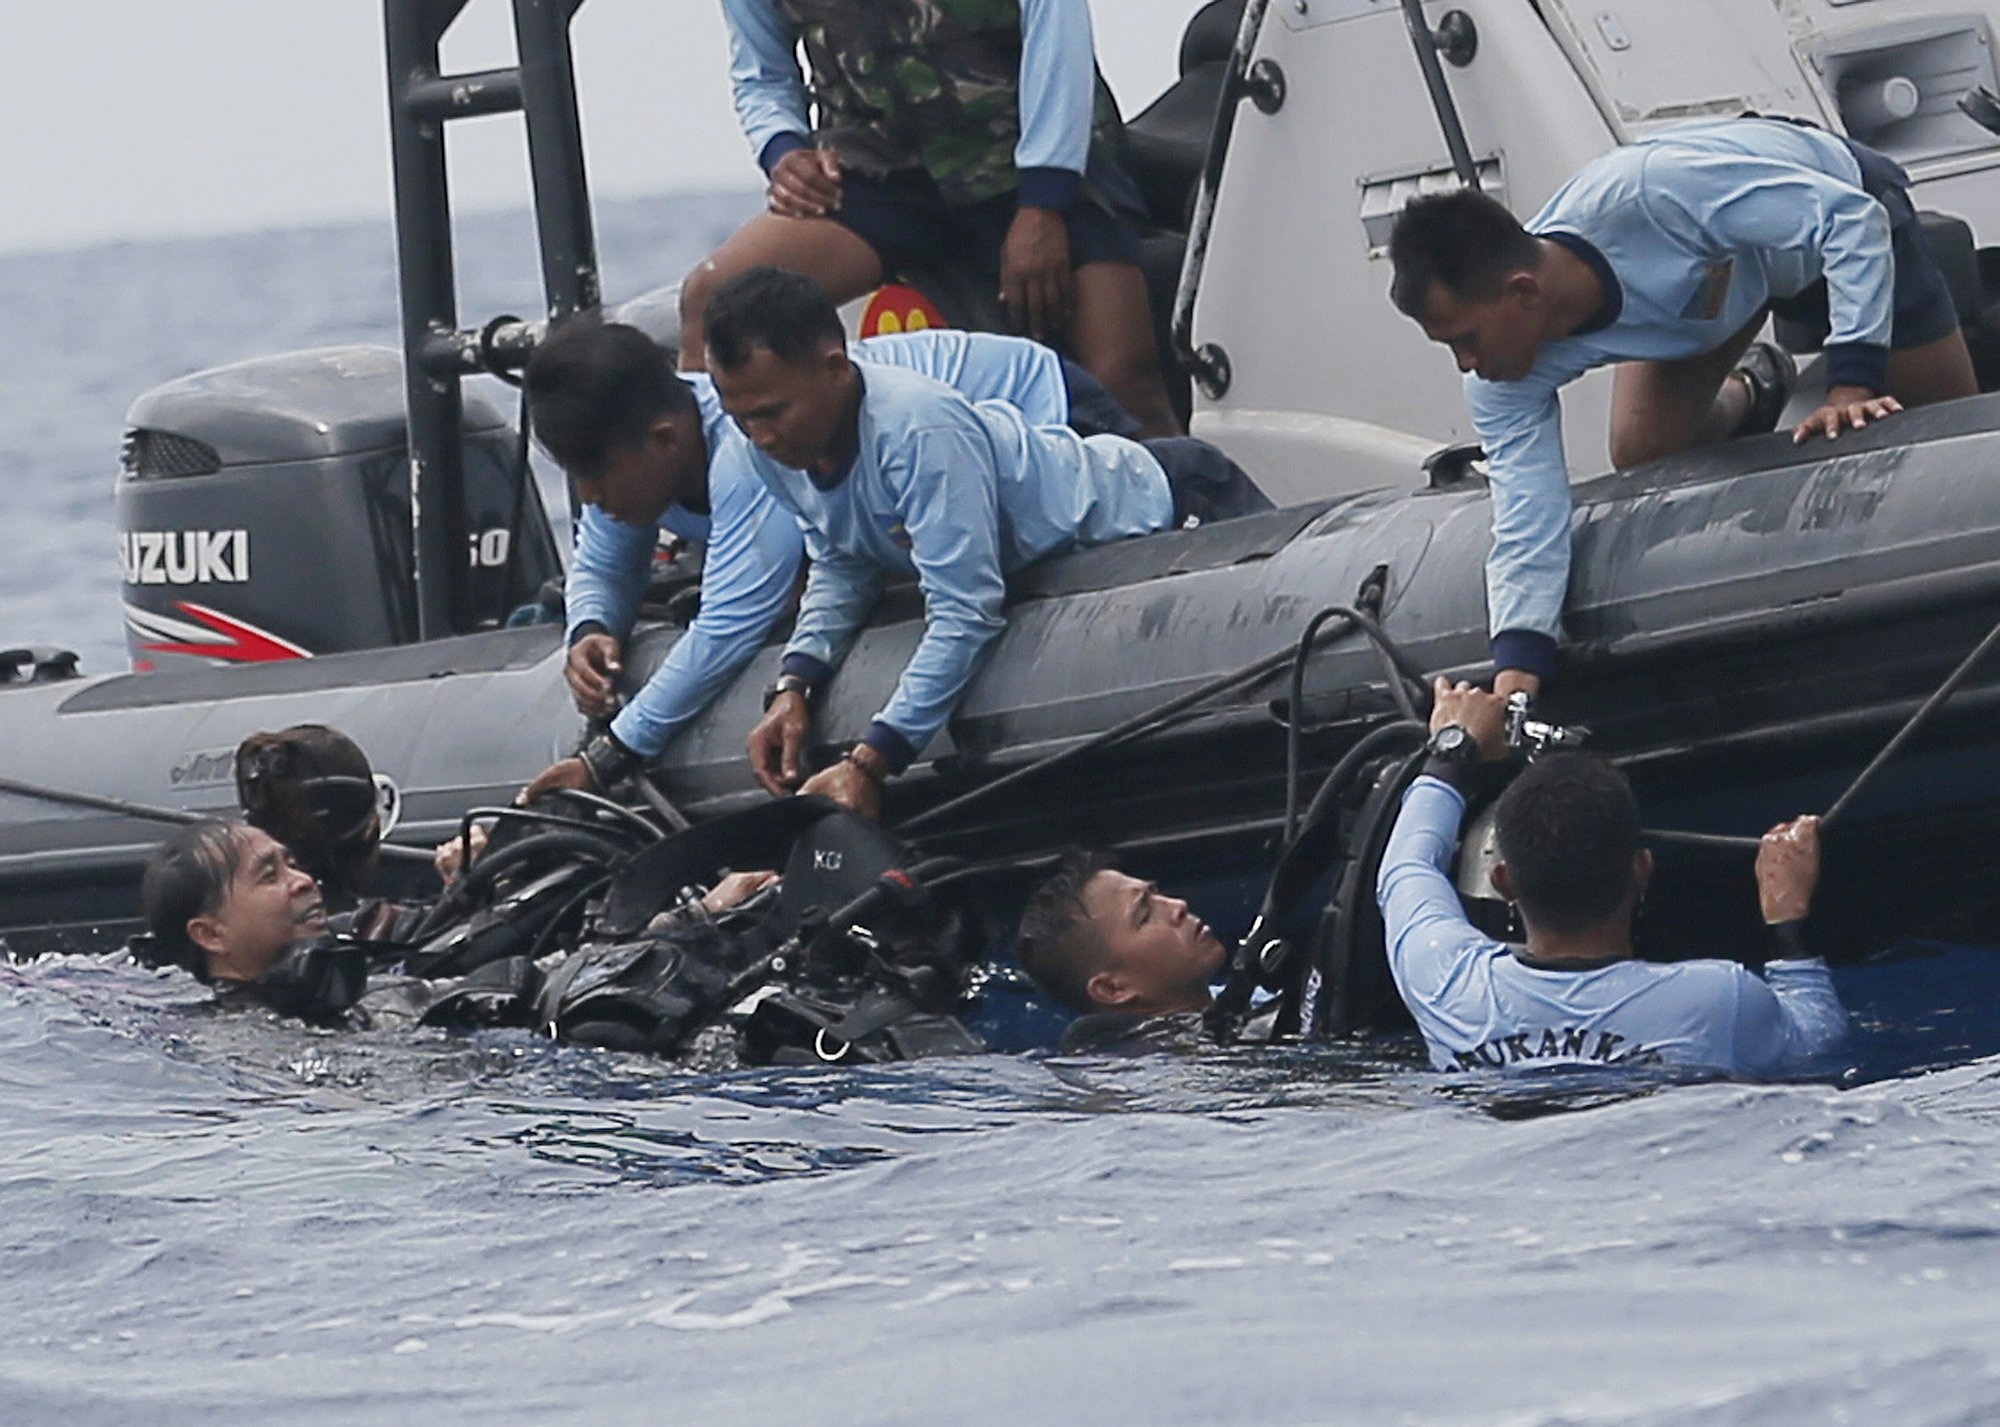 FILE - In this Oct. 30, 2018, file photo, Indonesian navy frogmen emerge from the water during a search operation for the victims of the crashed Lion Air plane in the waters of Tanjung Karawang, Indonesia. Photo: AP